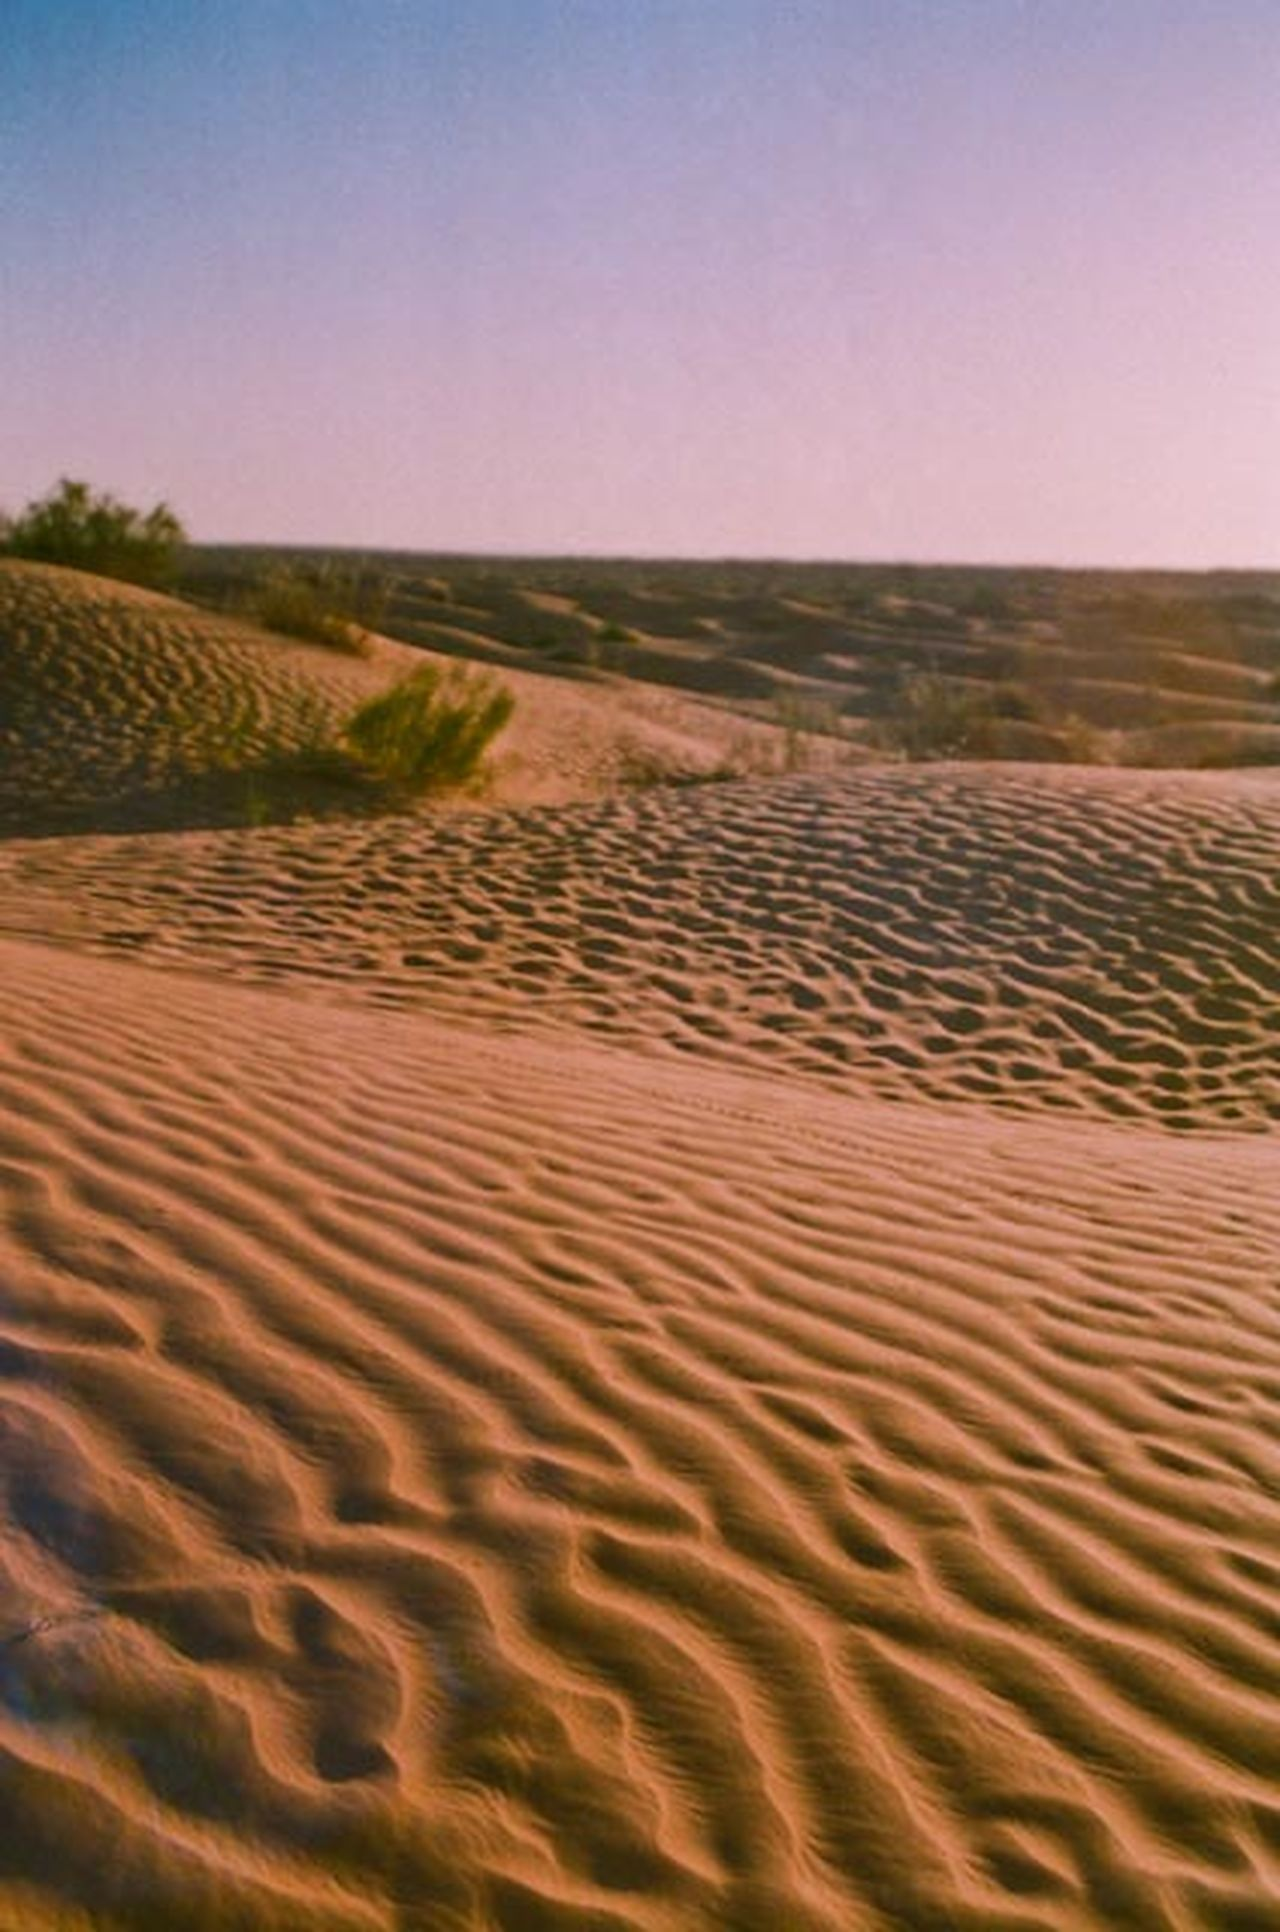 Arid Climate Desert No People Relief Sand Sand Dune Sand Waves Sky